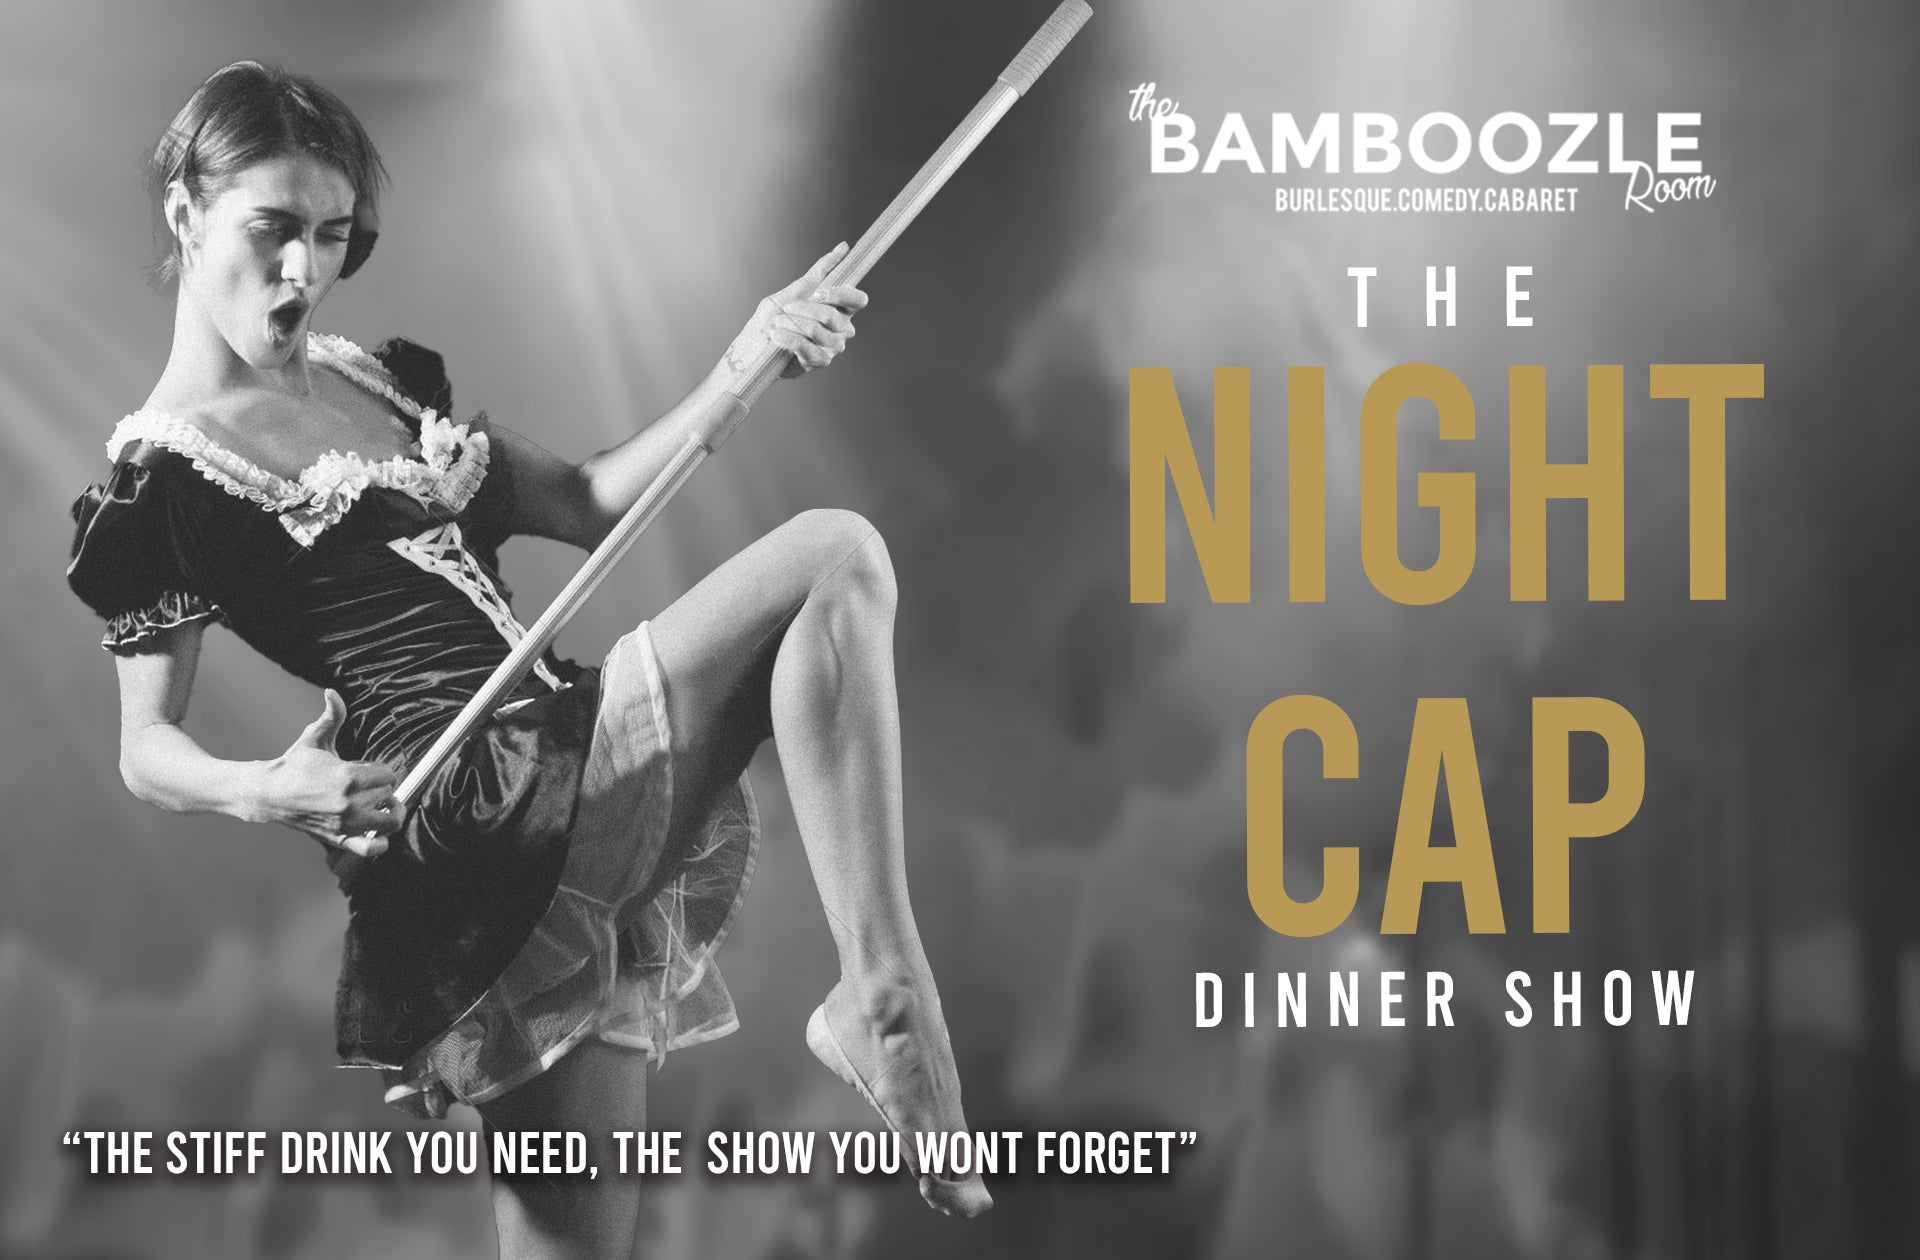 The Night Cap Dinner Show Saturday October 10th 2020